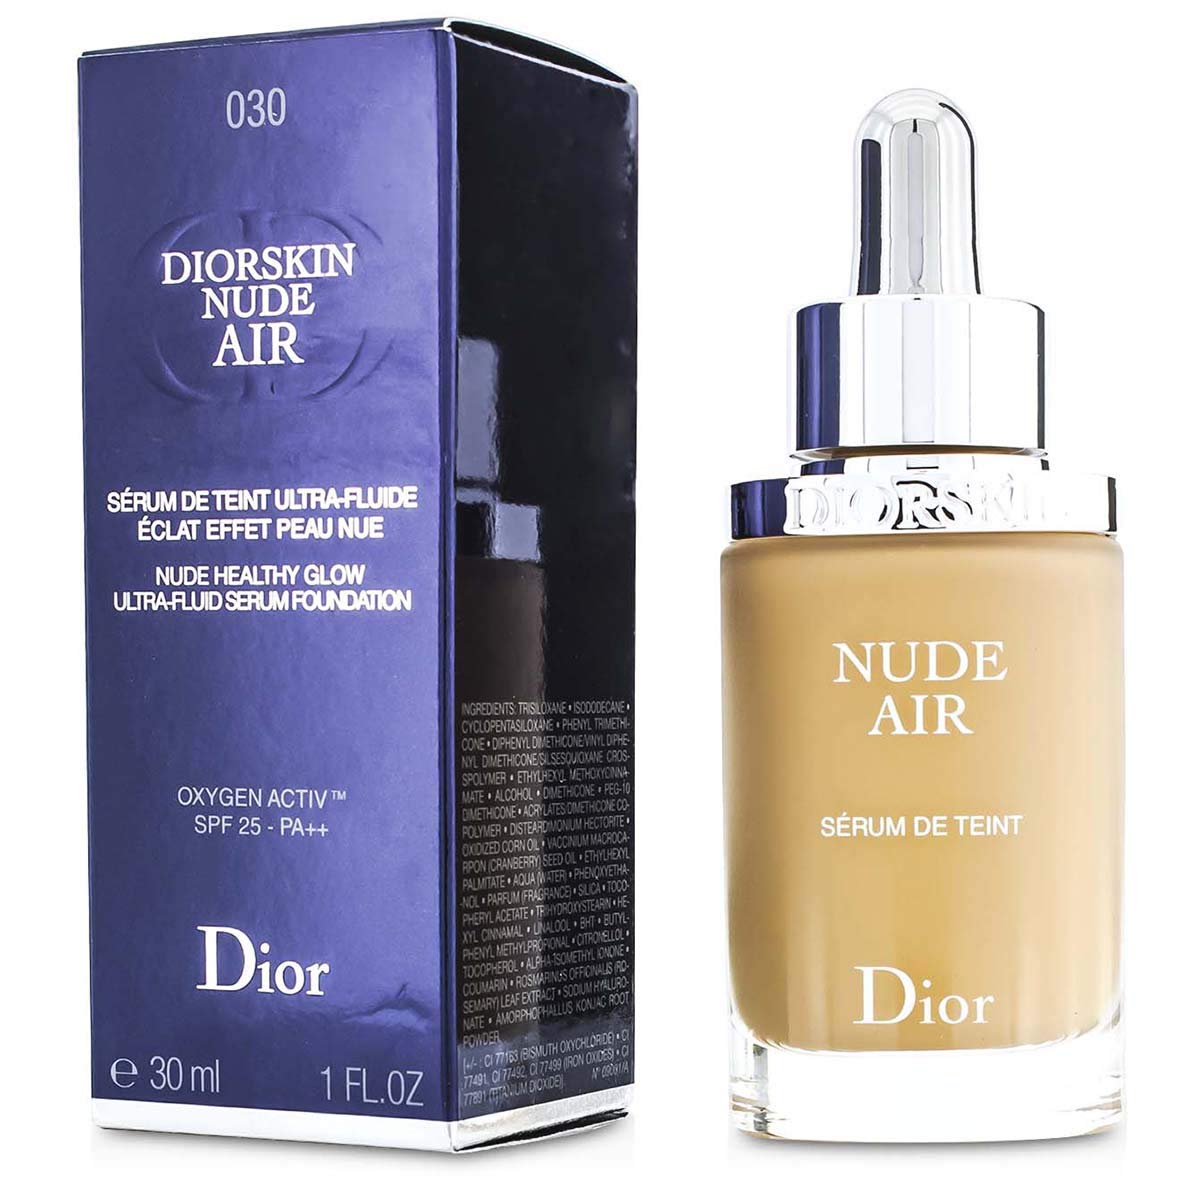 Diorskin Nude Air Healthy Glow Ultra-fluid Serum Foundation SPF 25 Medium Beige 030